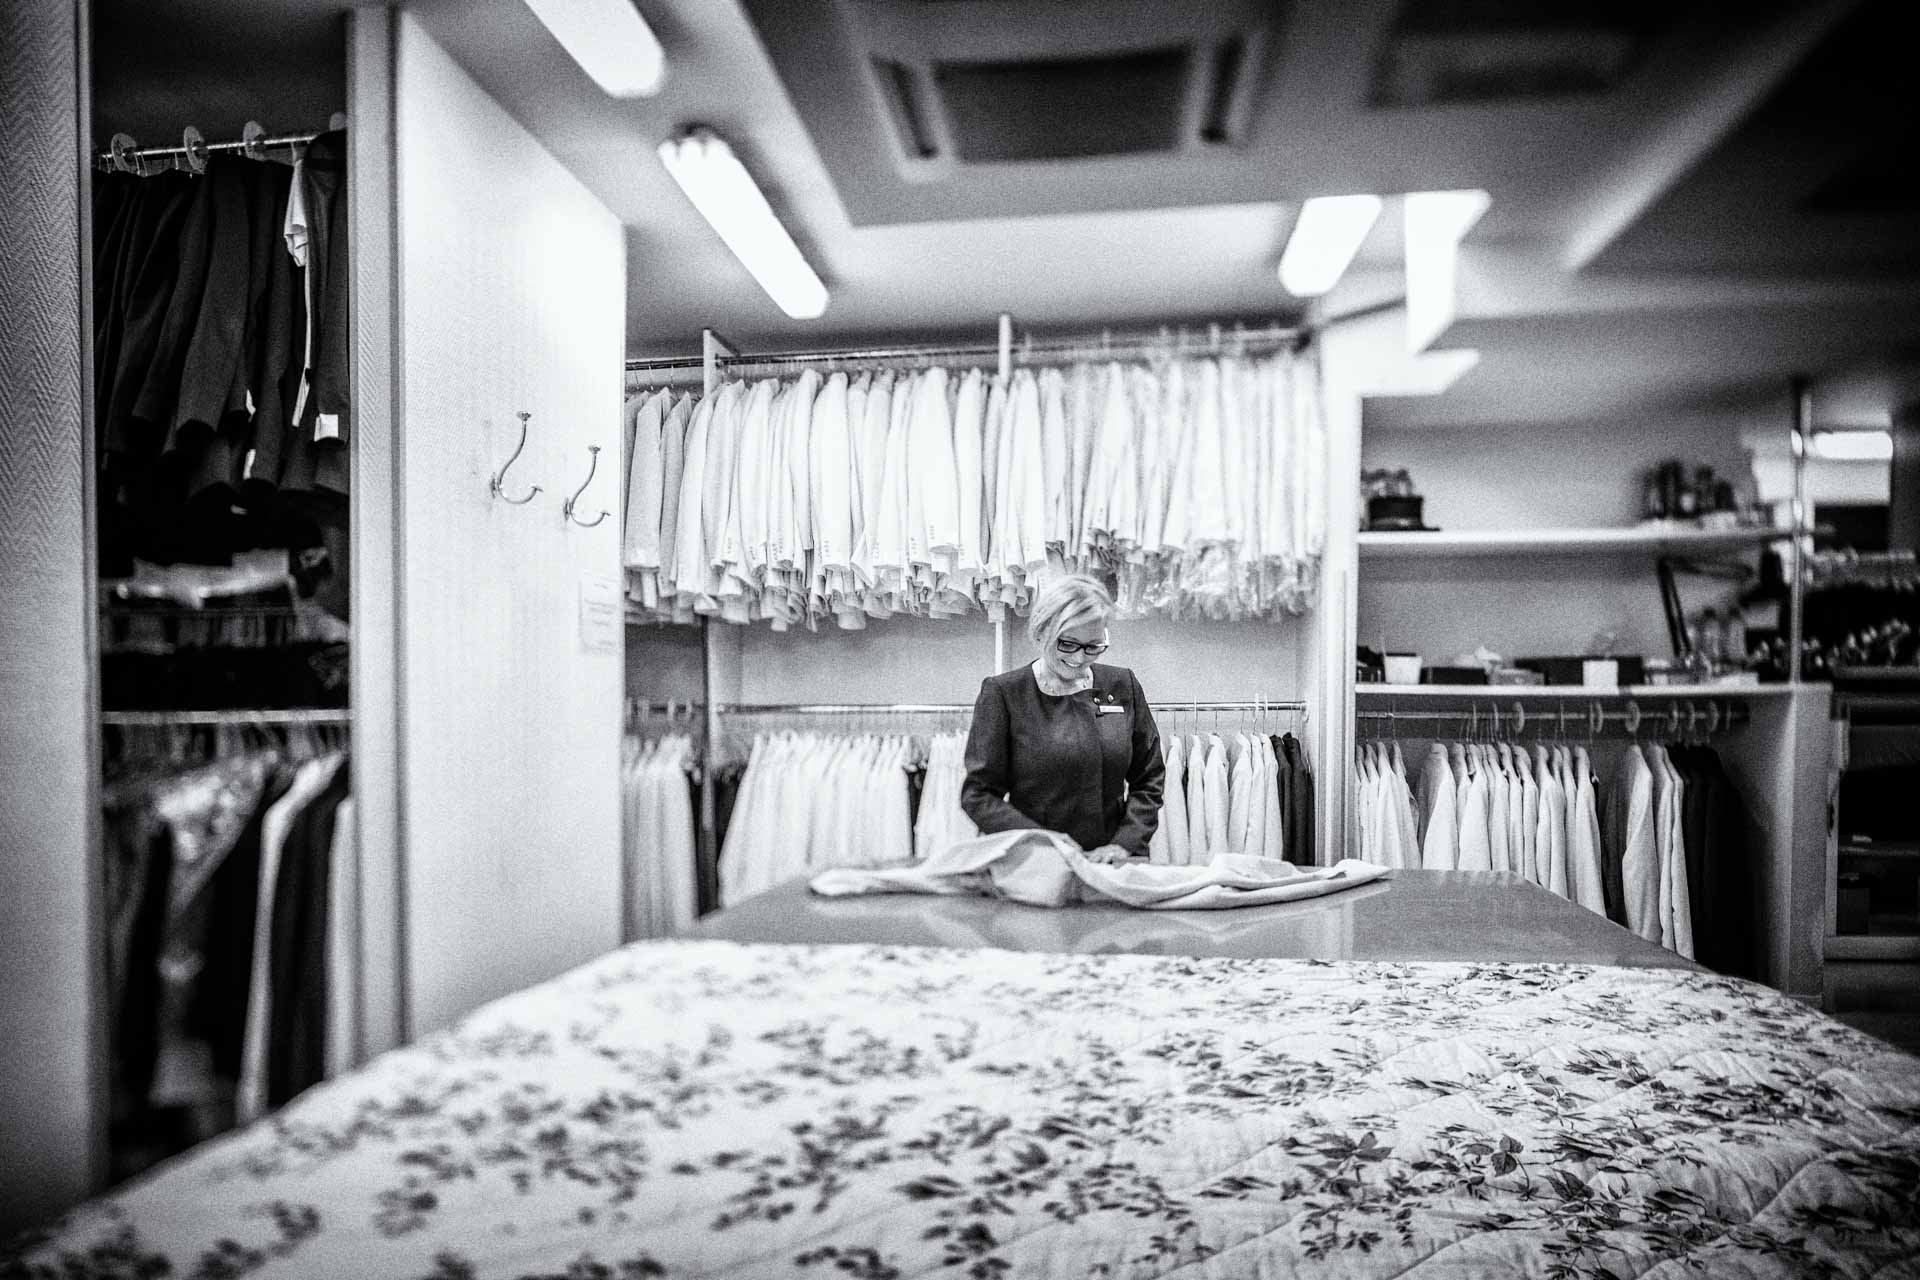 Dressmaker working in the Hotel Le Bristol Paris